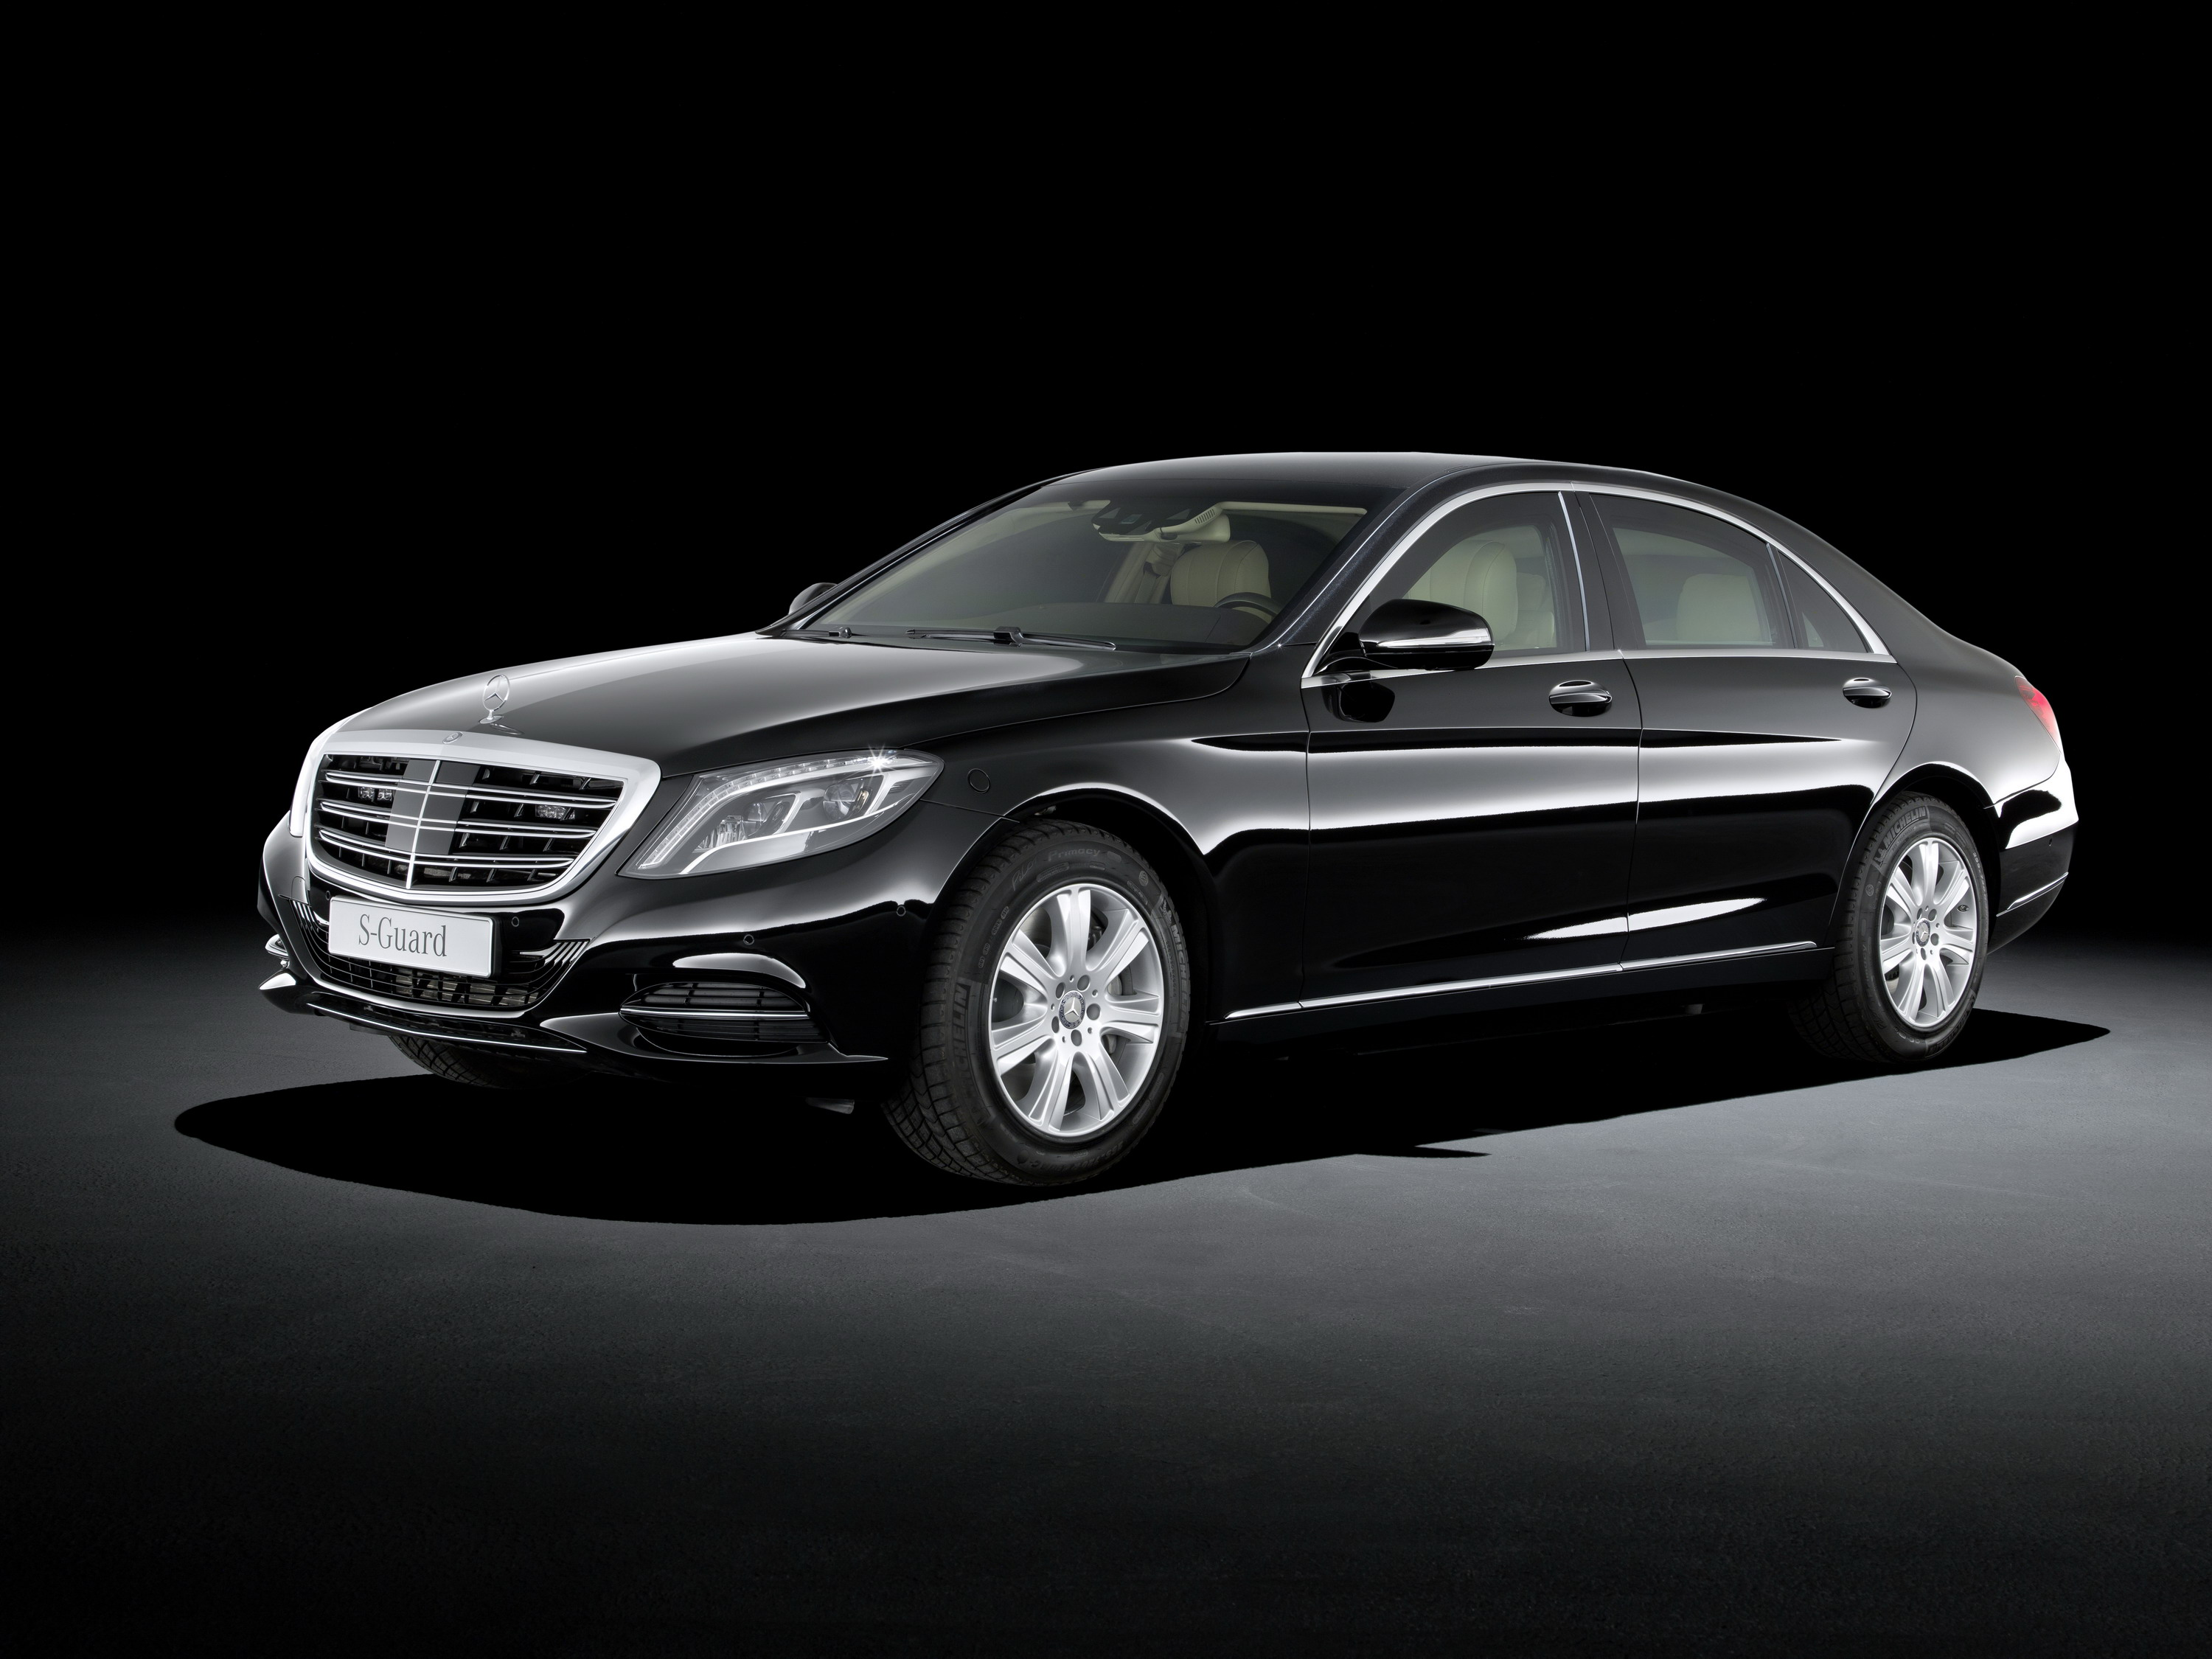 2015 Mercedes-Benz S600 Guard | Top Speed. »